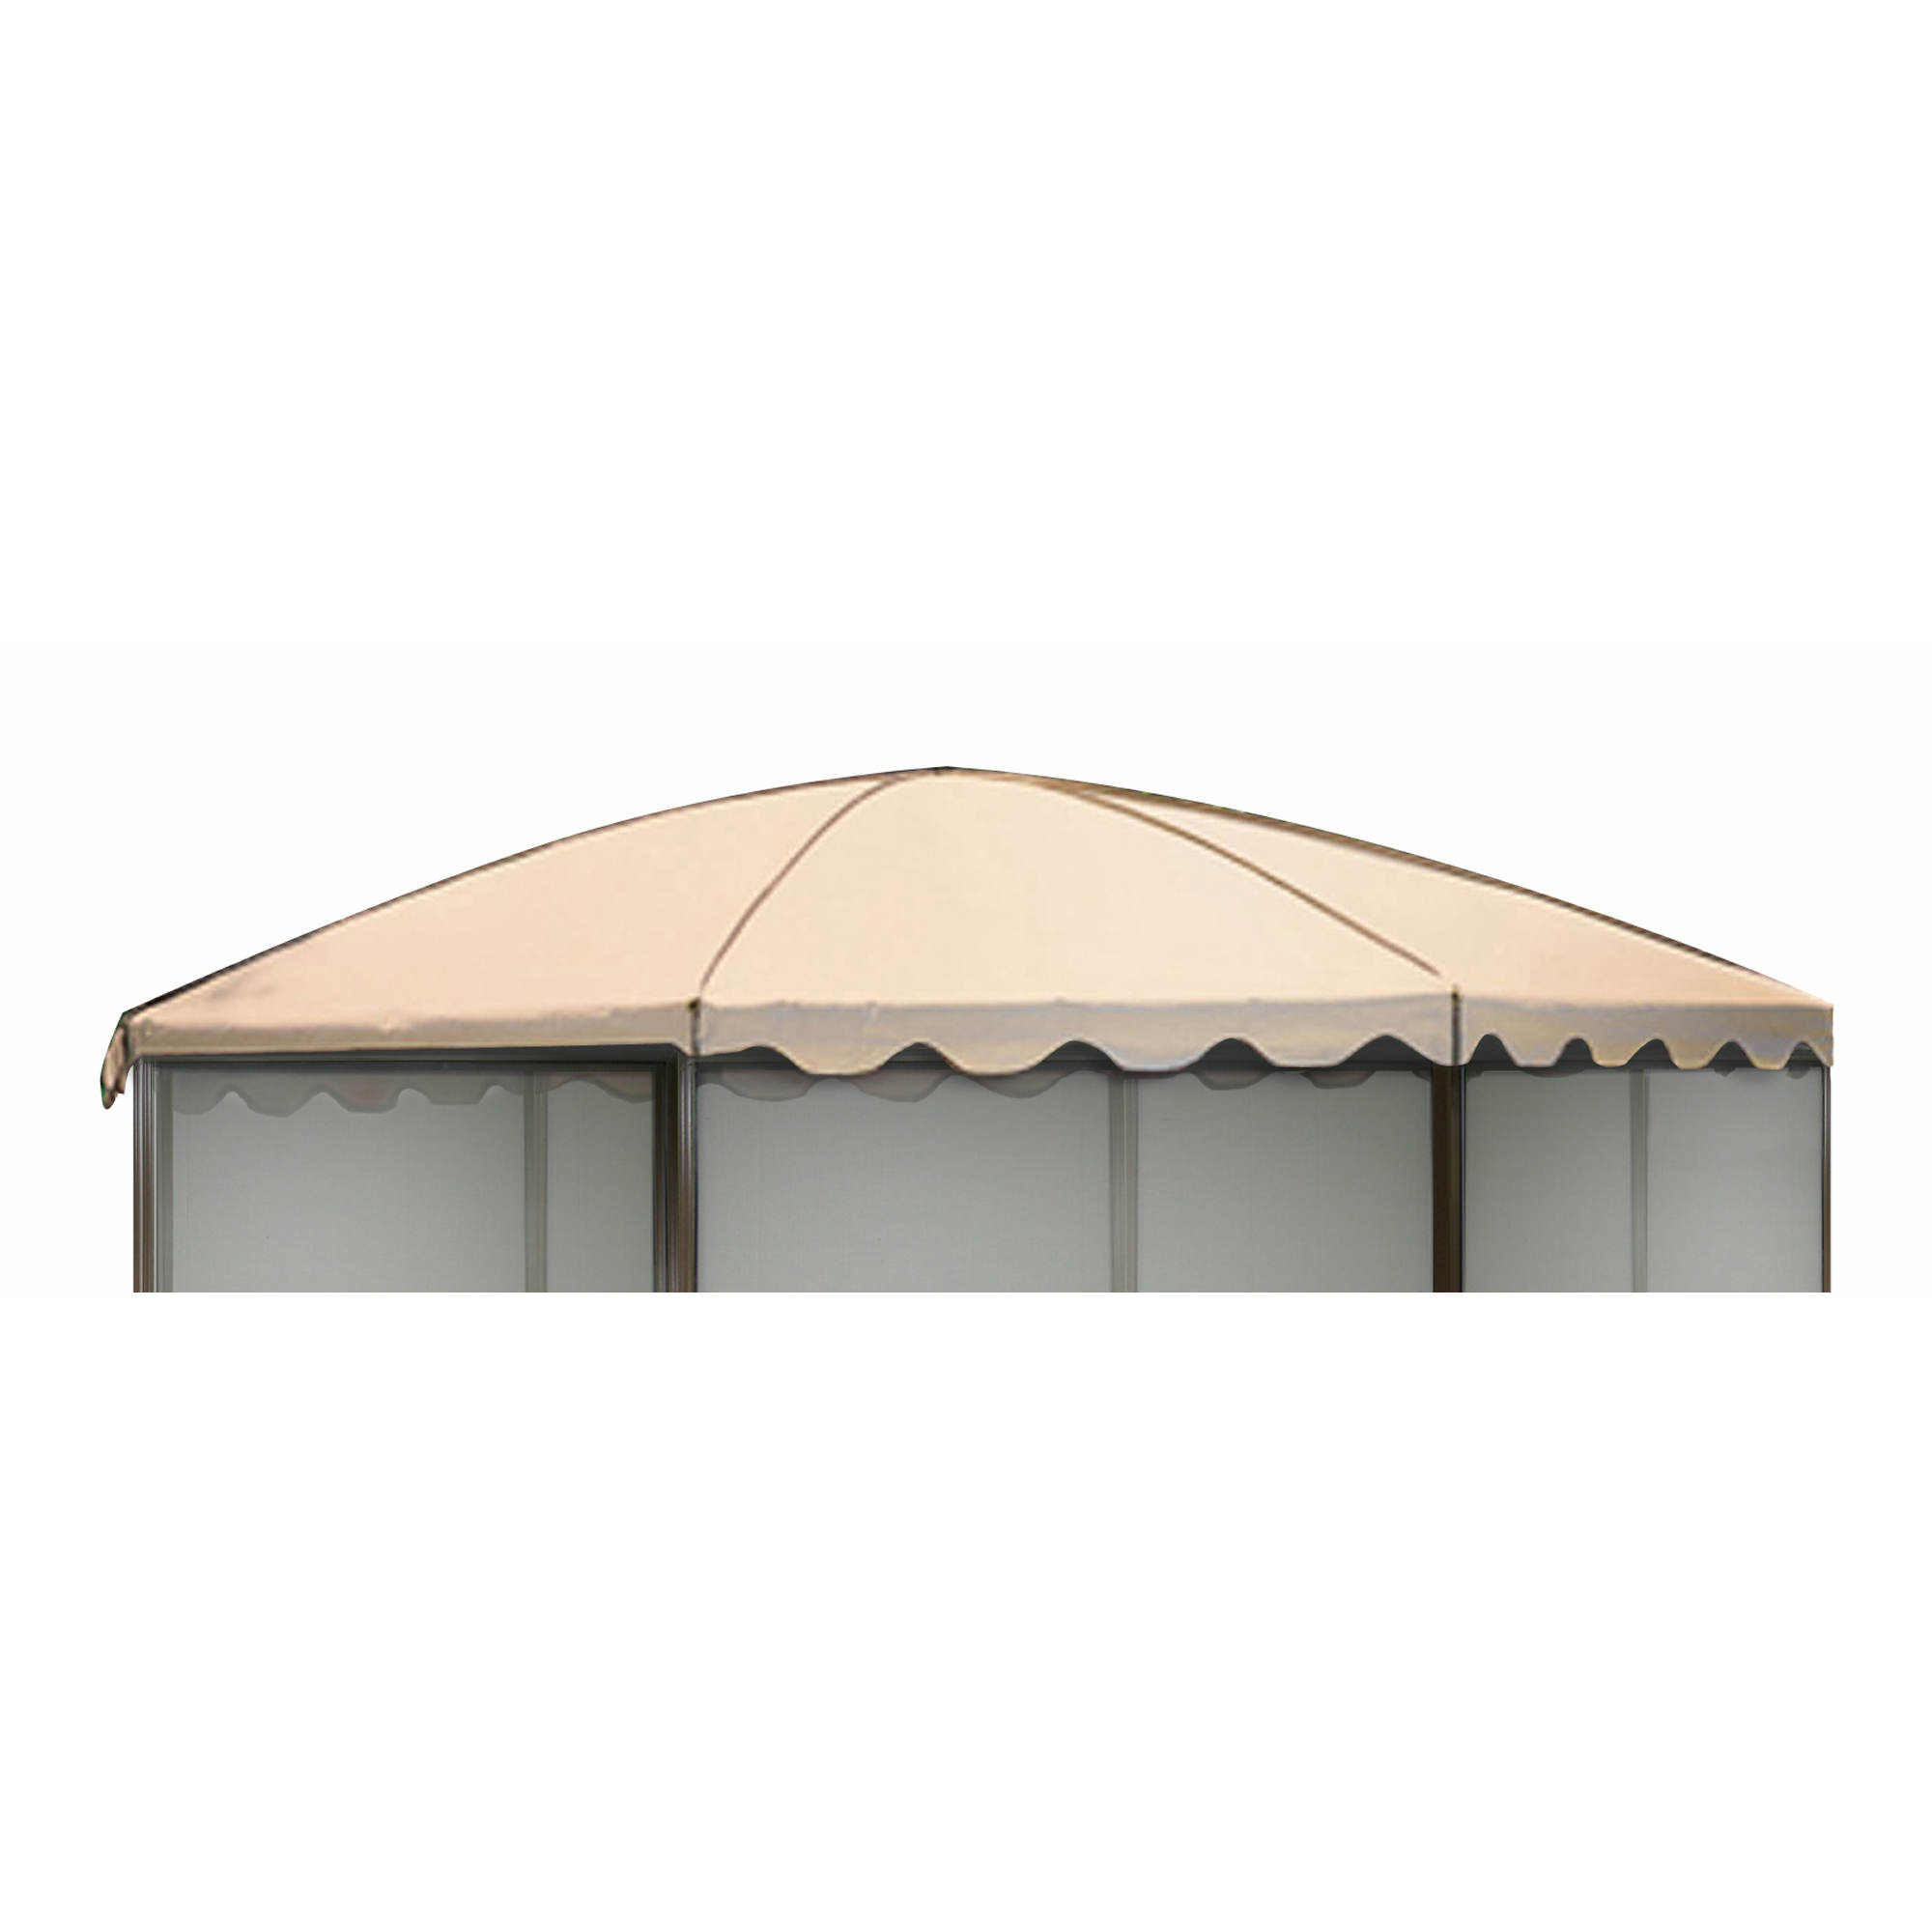 Replacement Roof For Casita 11 39 1 Round Screenhouse Model